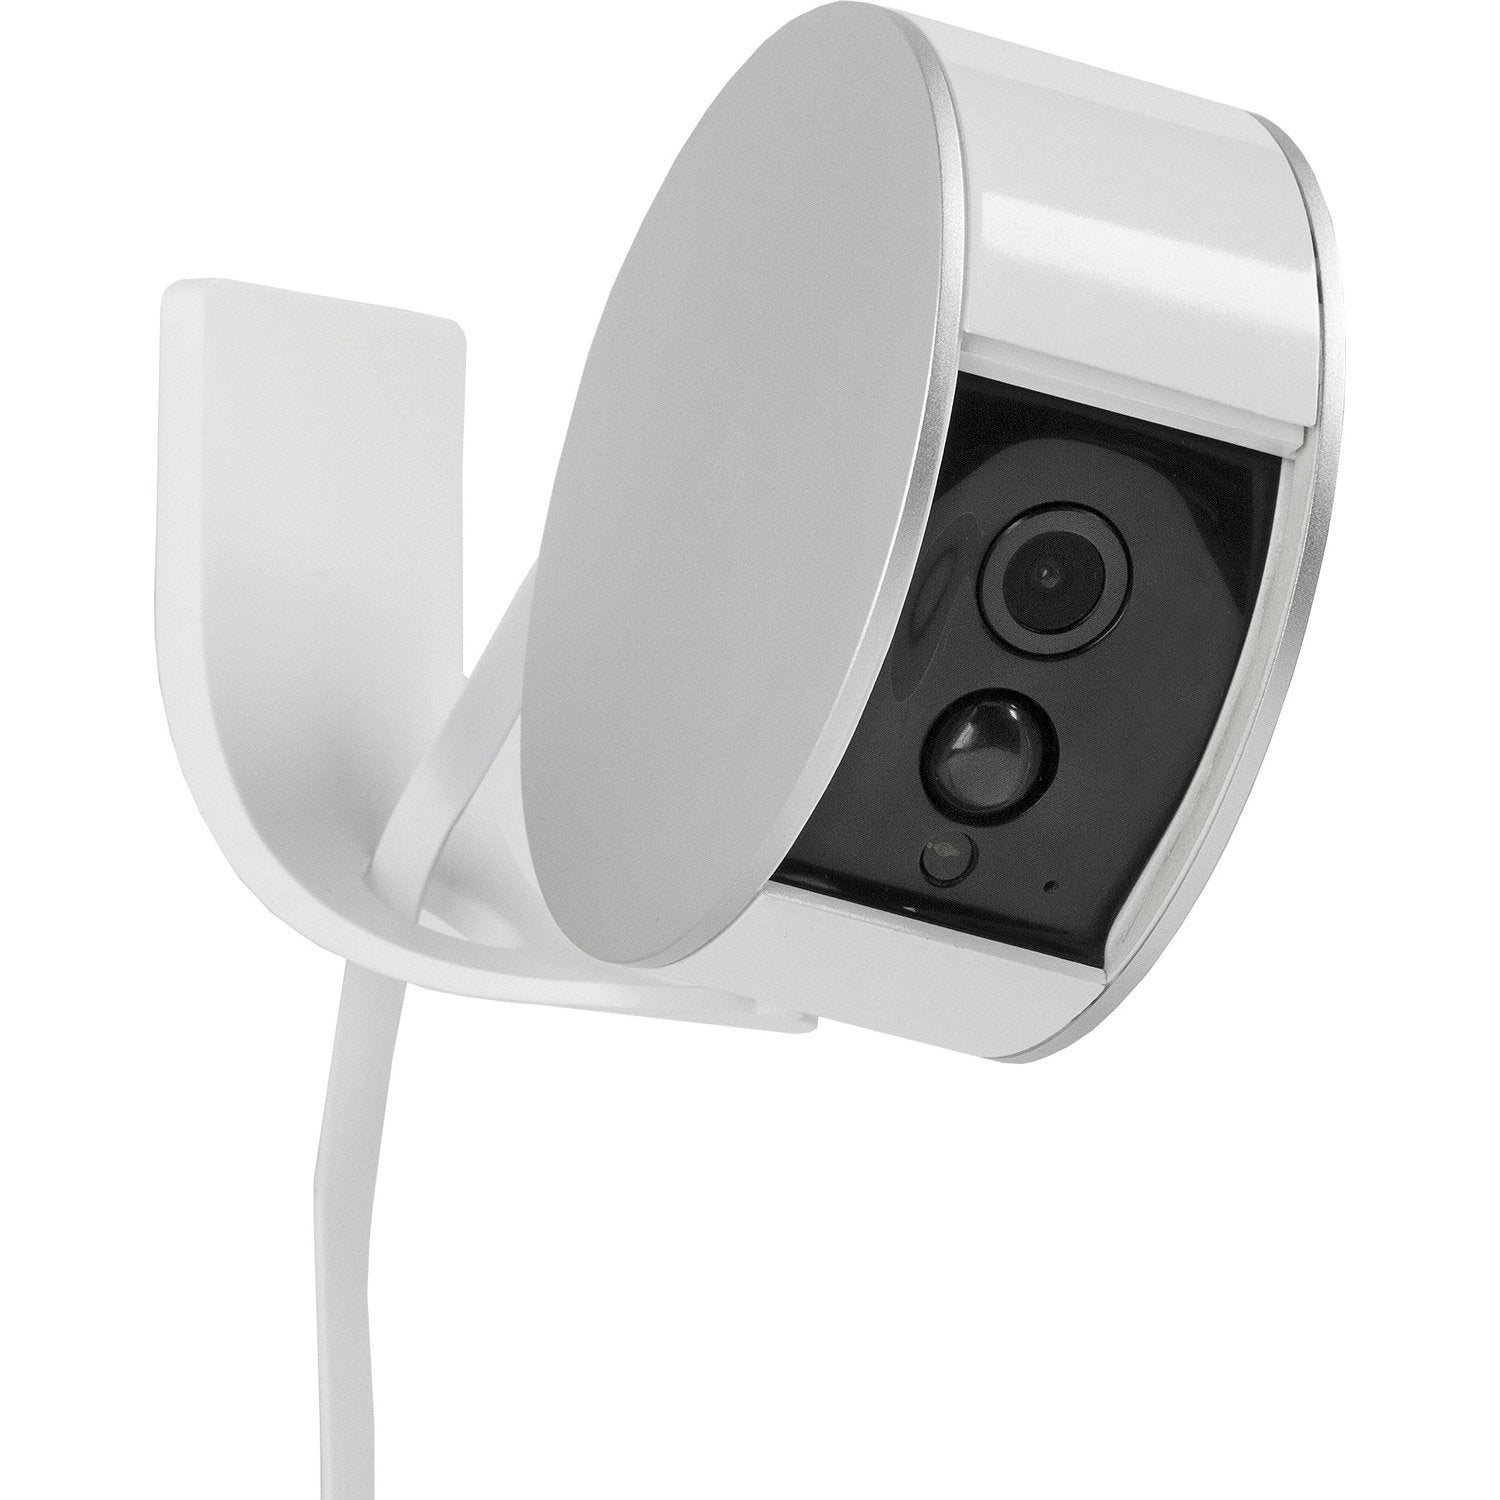 Support mural myfox security camera leroy merlin - Support mural tv leroy merlin ...